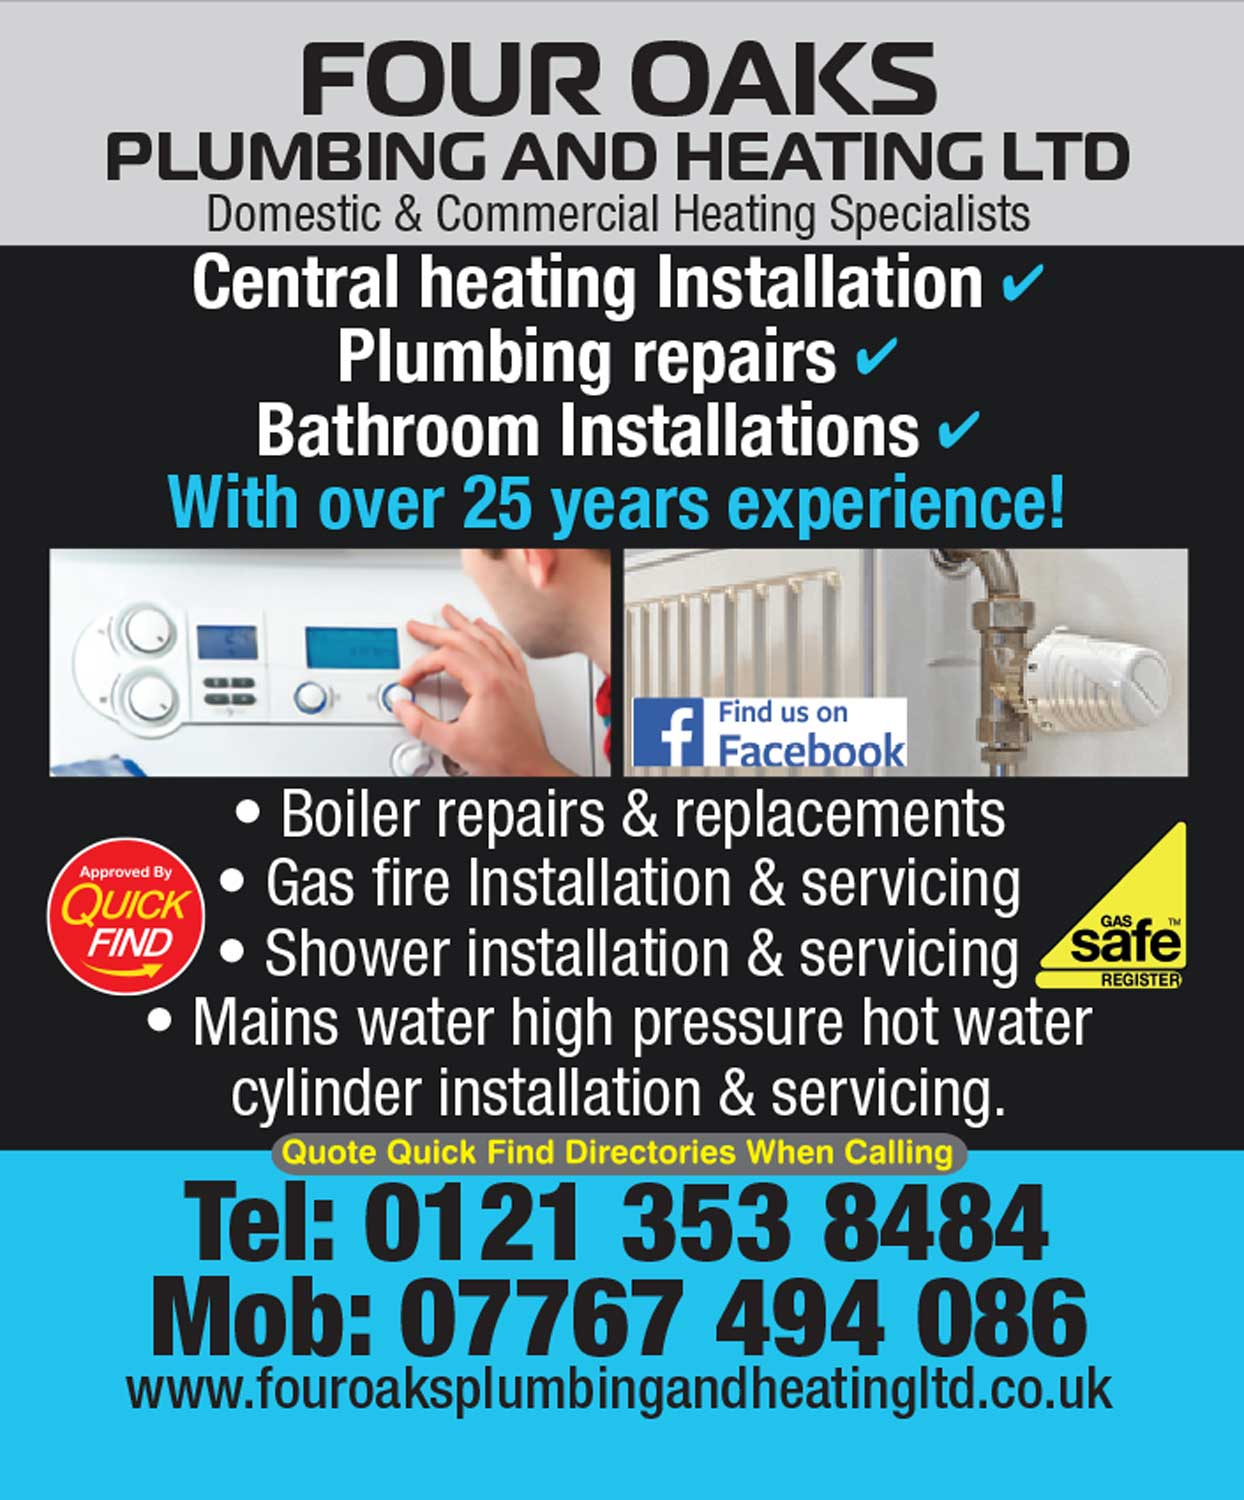 Four Oaks Plumbing & Heating Ltd